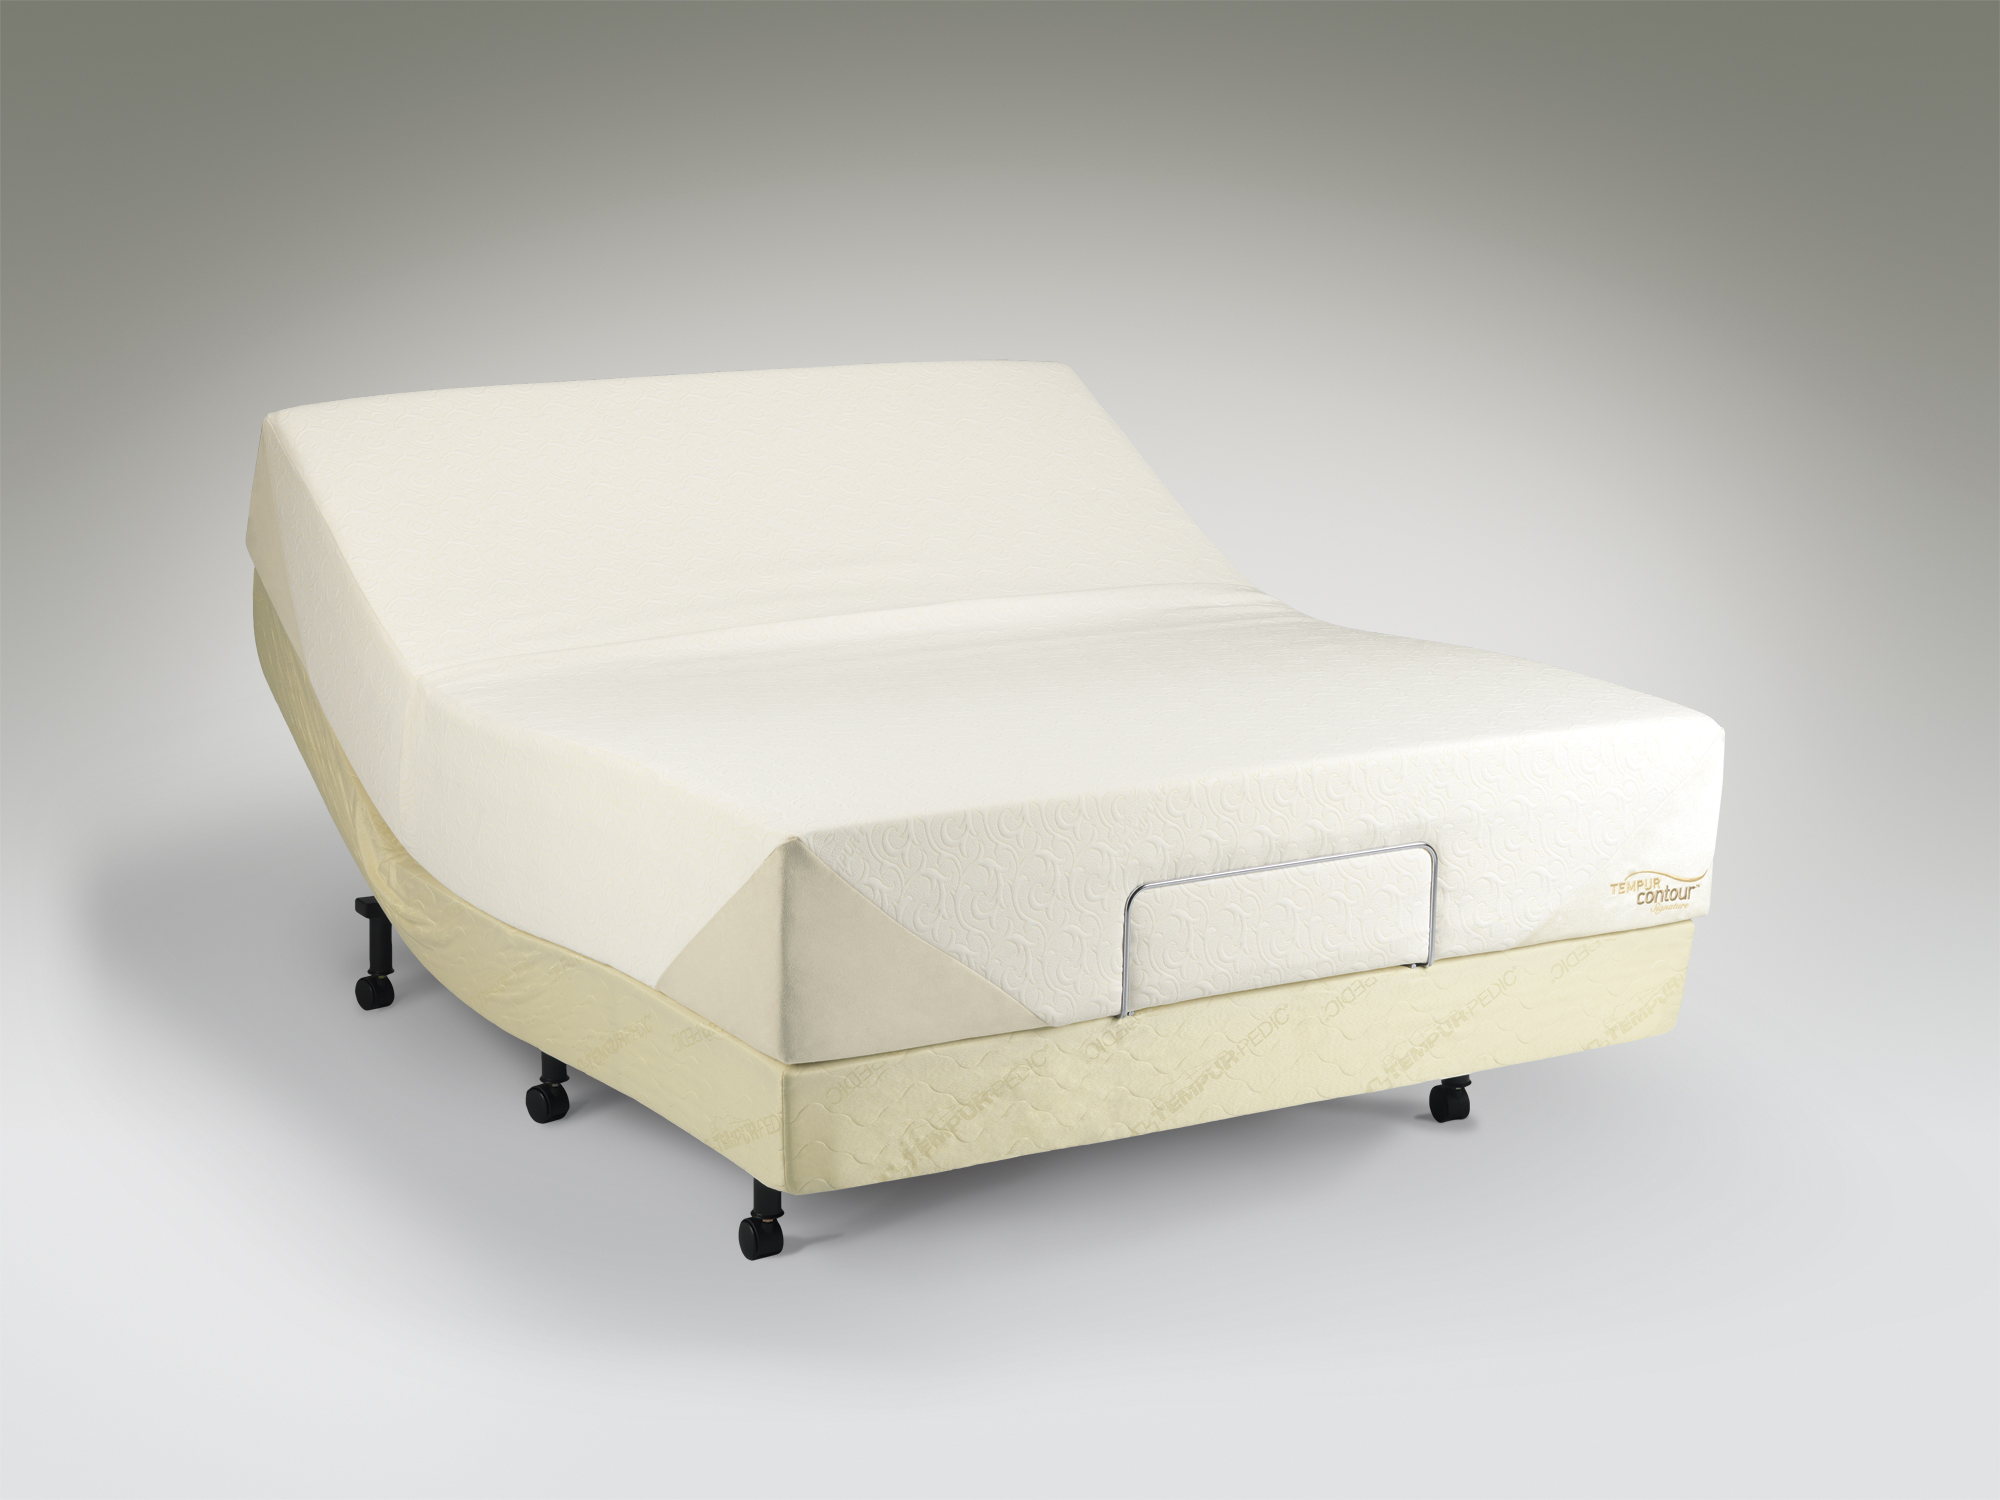 bed pedic mattress unusual firm of size sale queen shining topper price new tempurpedic pictures amazing tempur dreadful beautiful twin full